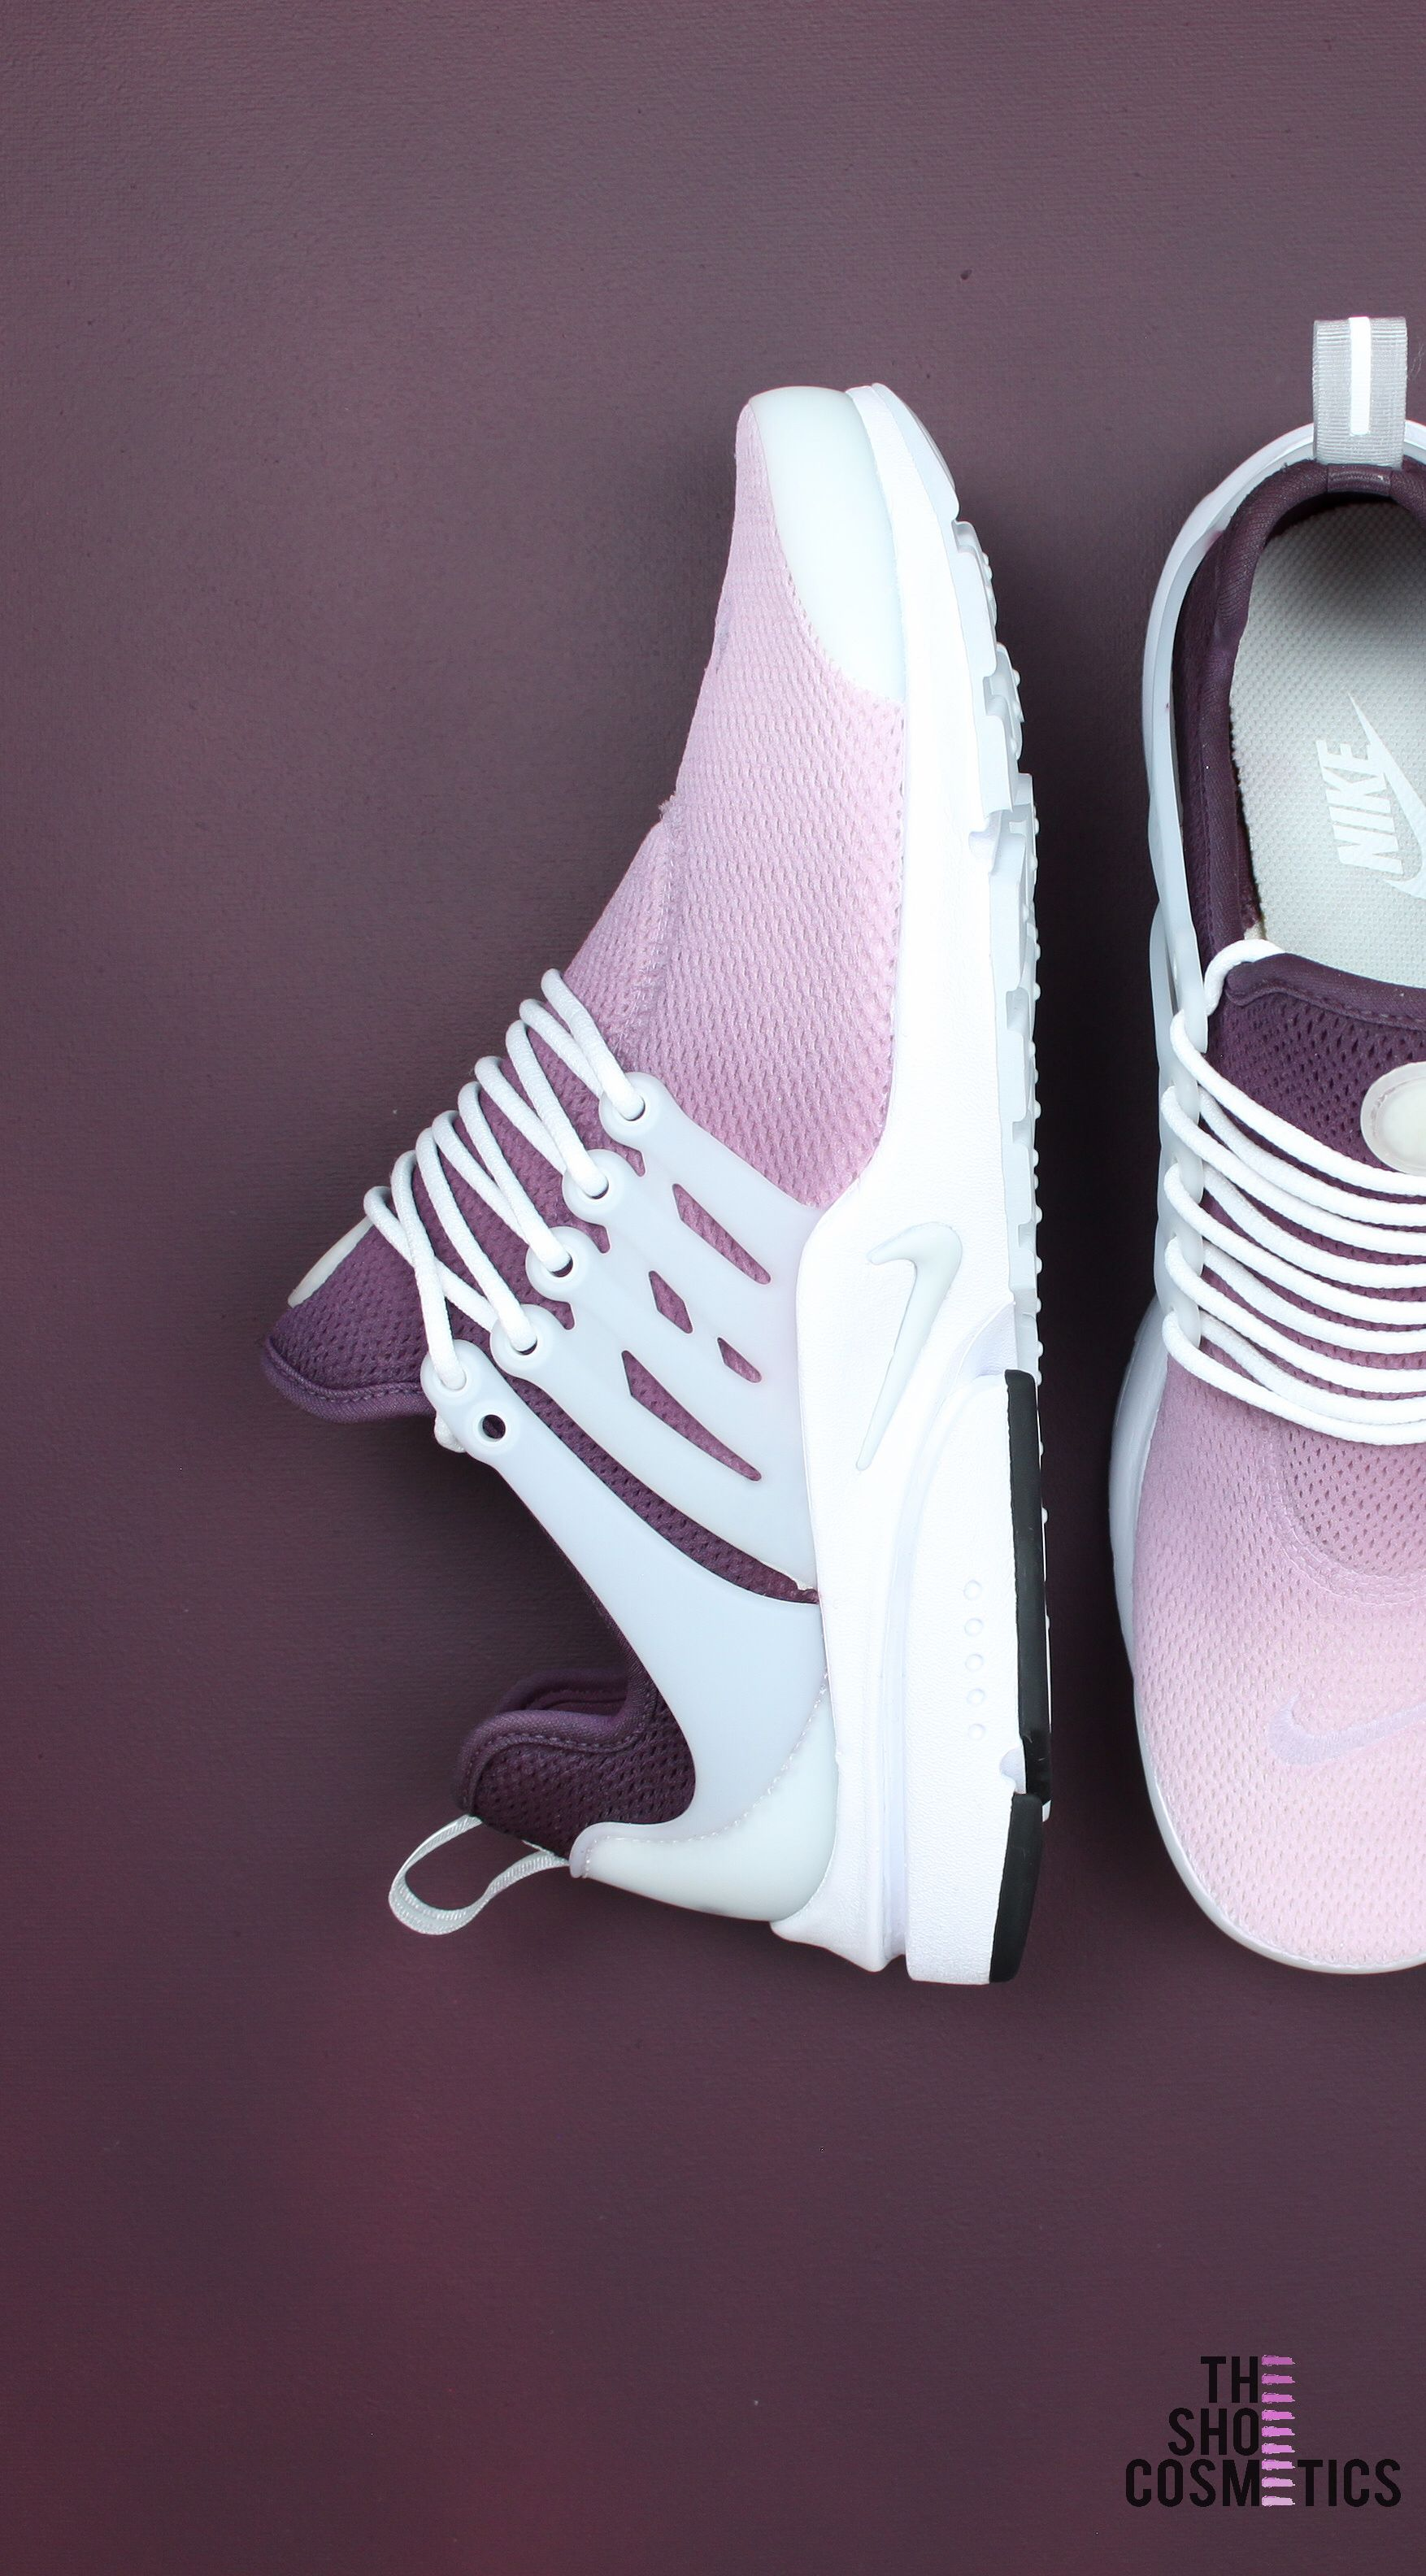 955fb342791e Looking for Maroon Nike shoes  Explore are ombré custom Nike Presto women s  sneakers. These maroon aesthetic cute custom Nike shoes are perfect for  standing ...